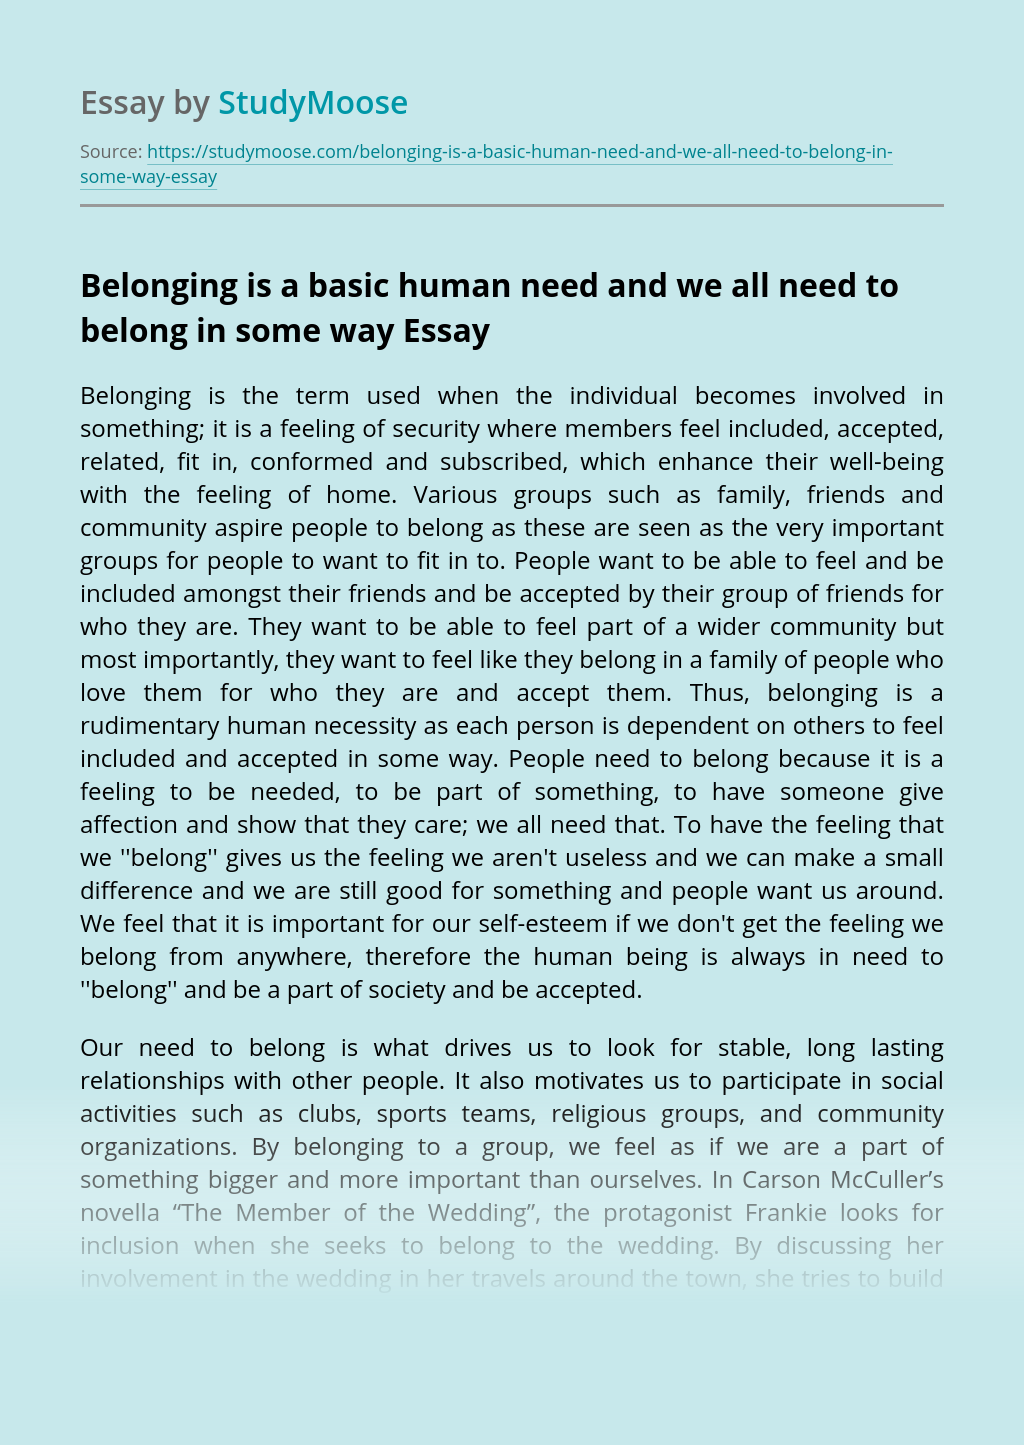 Belonging is a basic human need and we all need to belong in some way